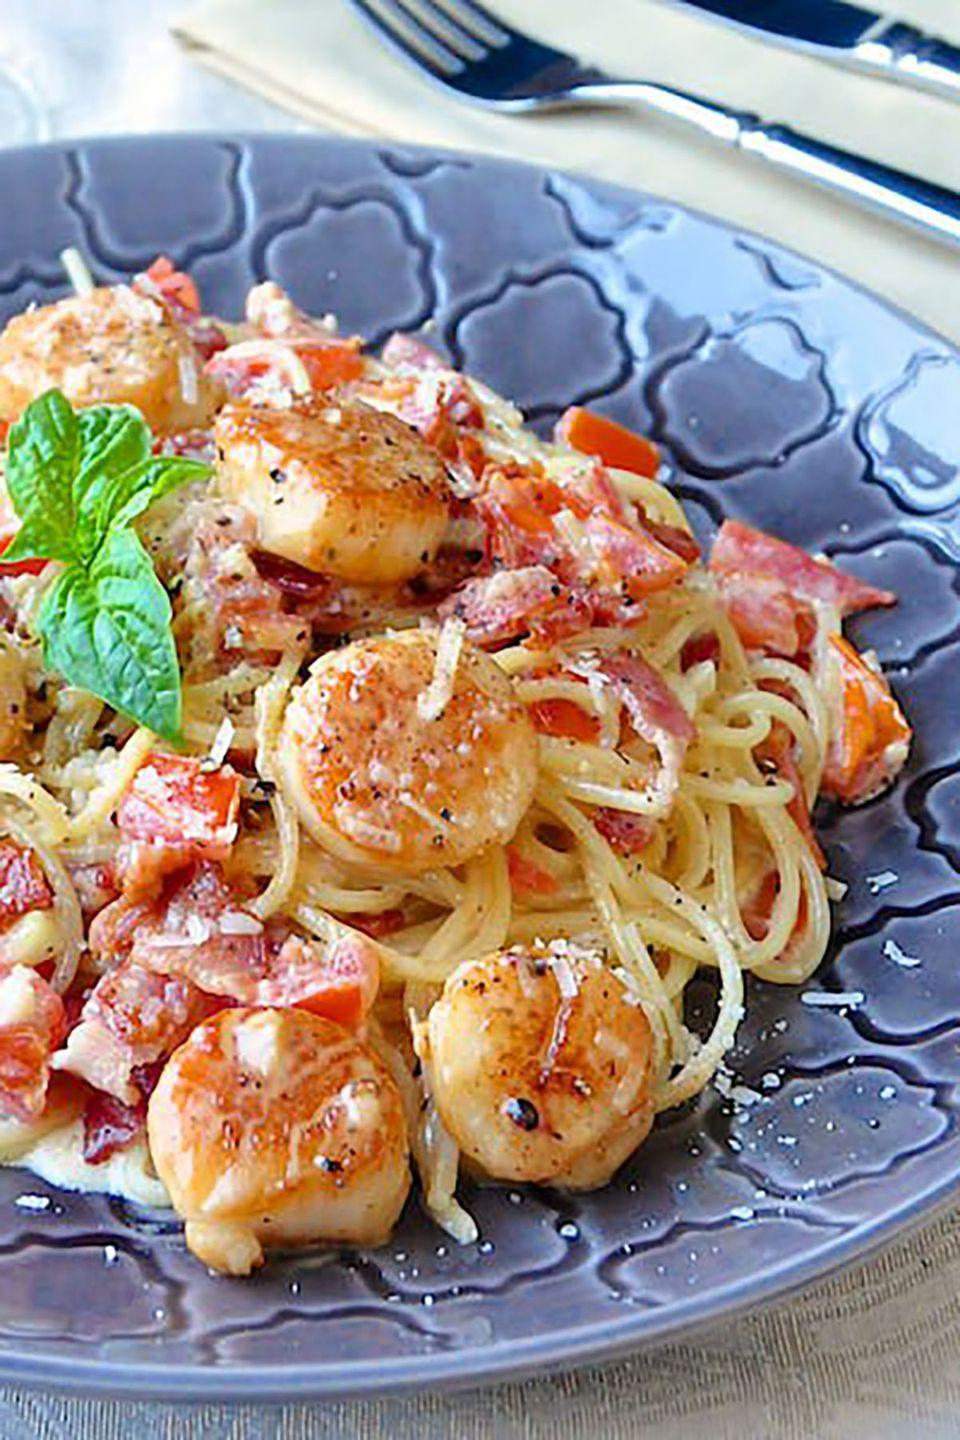 """<p>Kick your spaghetti up a notch with a dish that is quick, easy, and full of flavor.</p><p><strong>Get the recipe at <a href=""""http://www.rockrecipes.com/creamy-garlic-scallop-spaghetti-with-bacon/"""" rel=""""nofollow noopener"""" target=""""_blank"""" data-ylk=""""slk:Rock Recipes"""" class=""""link rapid-noclick-resp"""">Rock Recipes</a>.</strong></p>"""